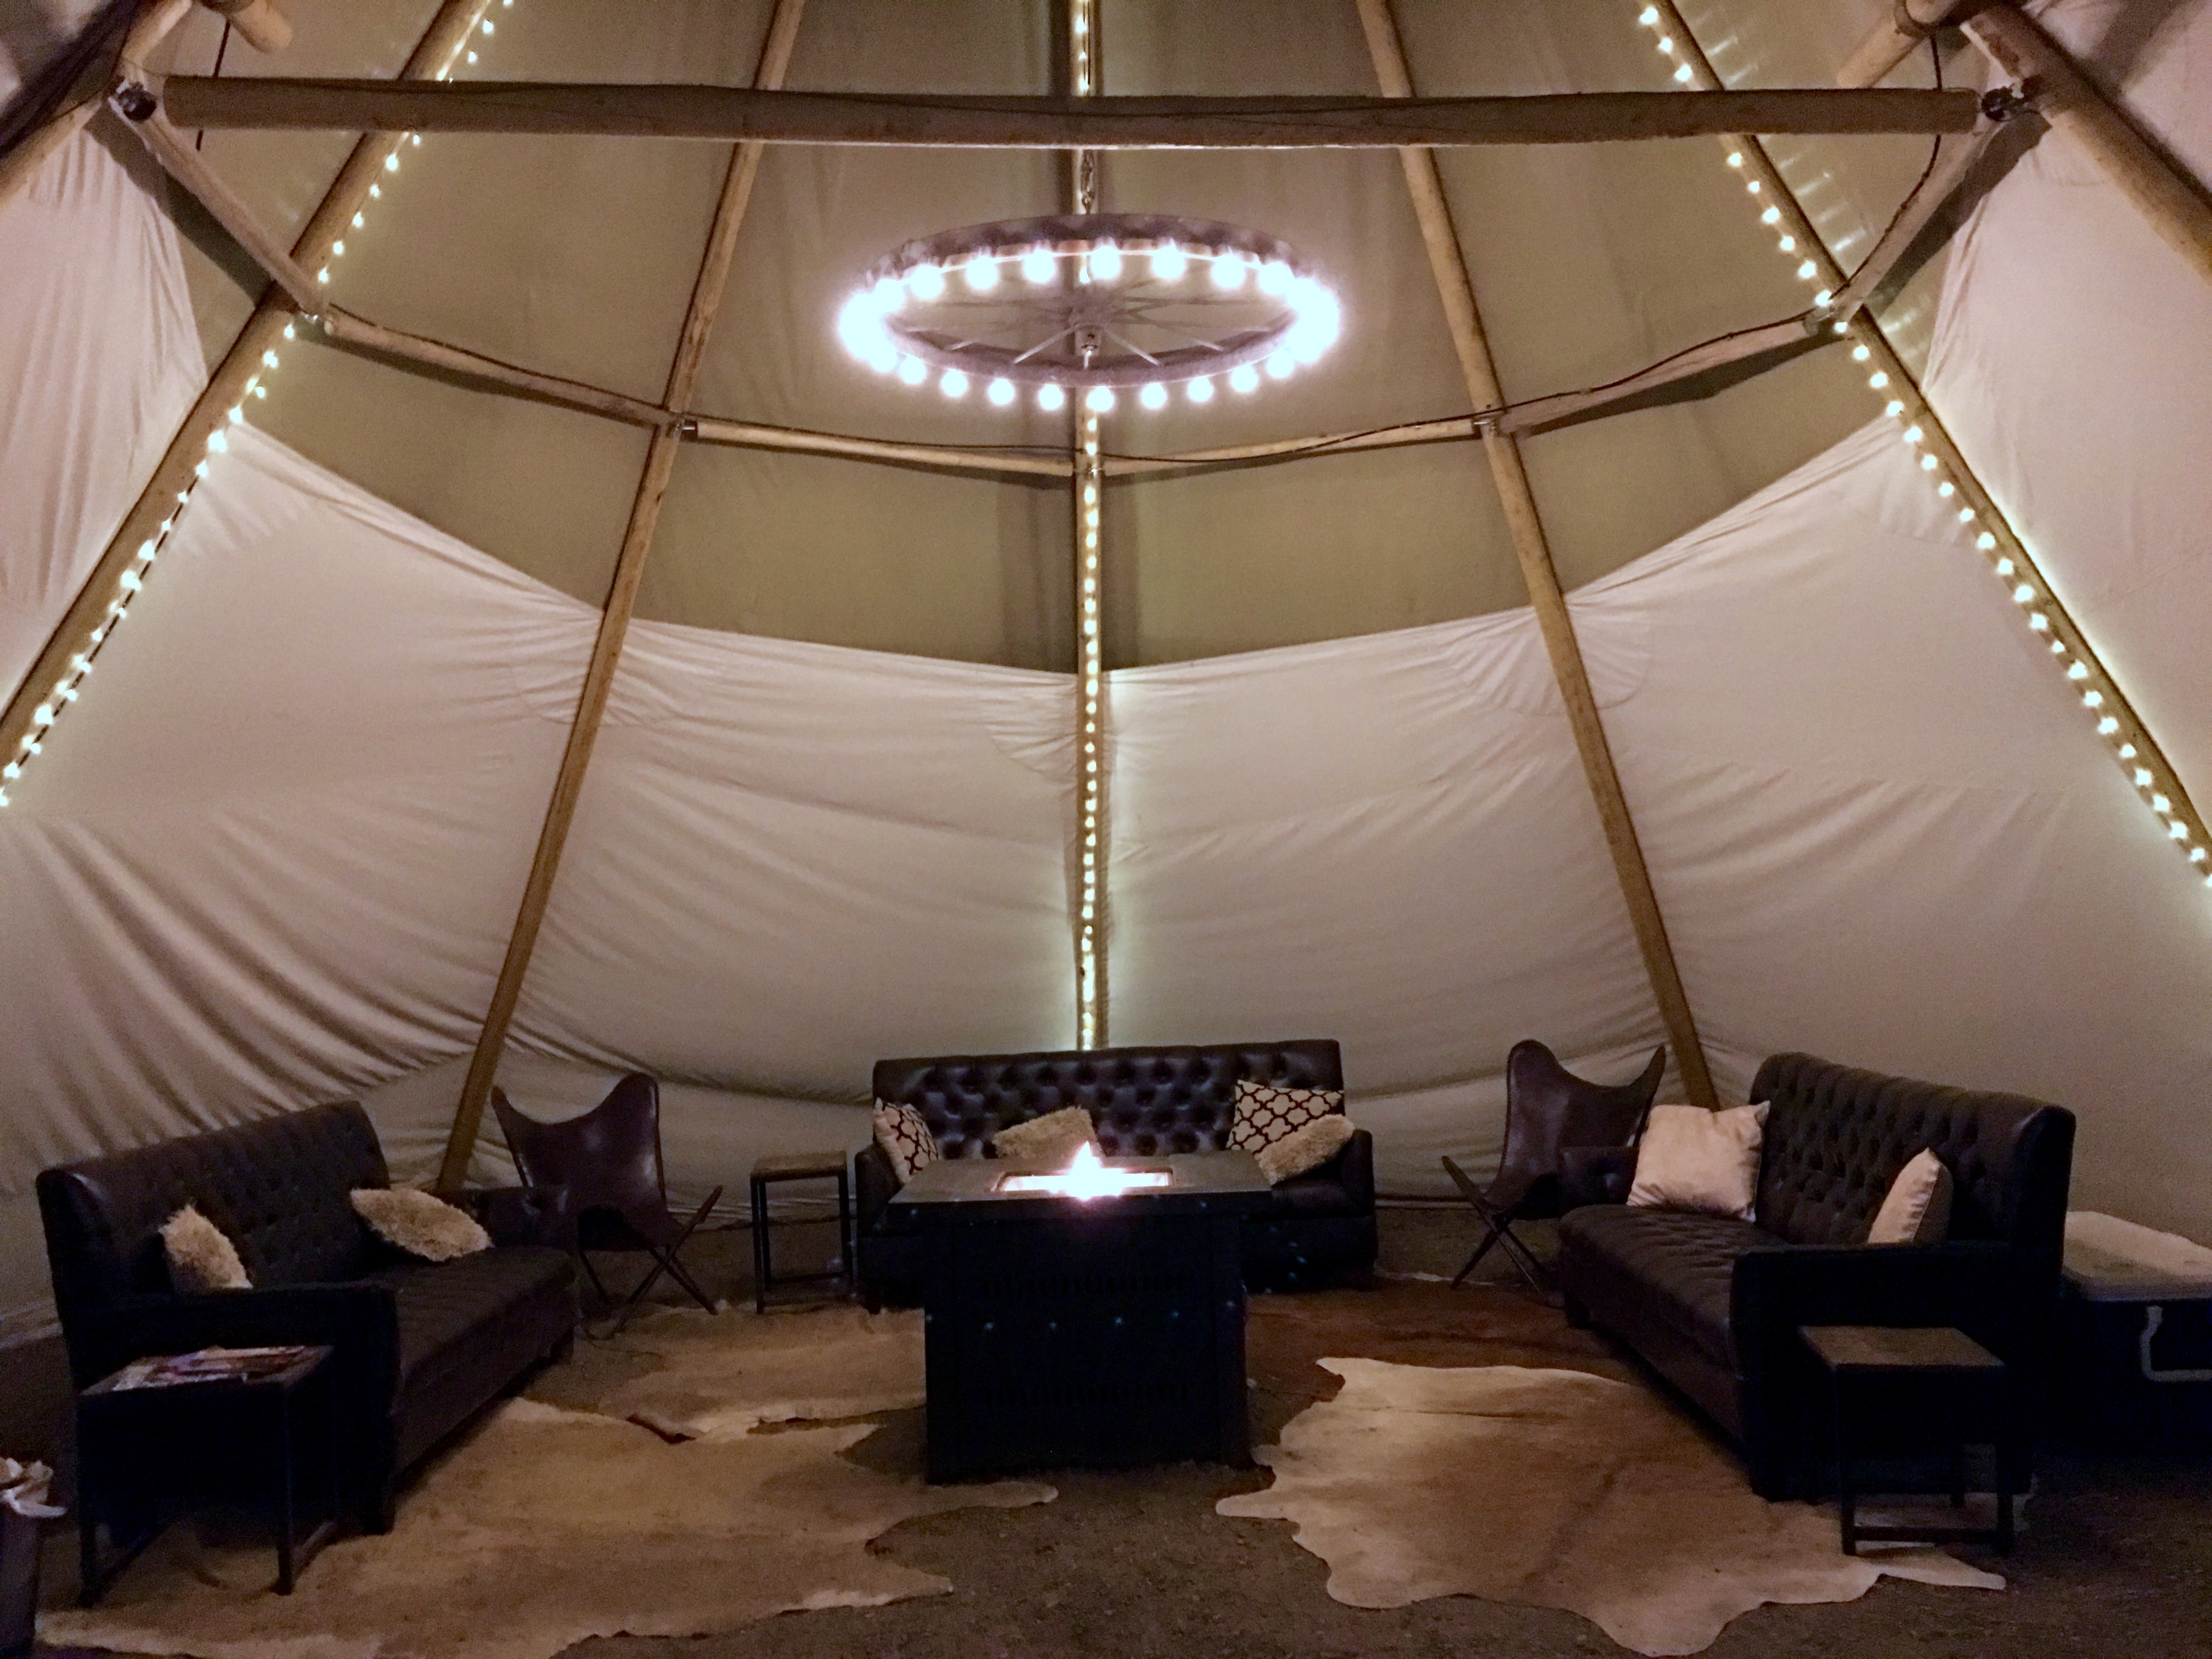 Moab Under Canvas Main Tent & Glamping Under the Stars of Moab u2013 52 Things 52 Weeks